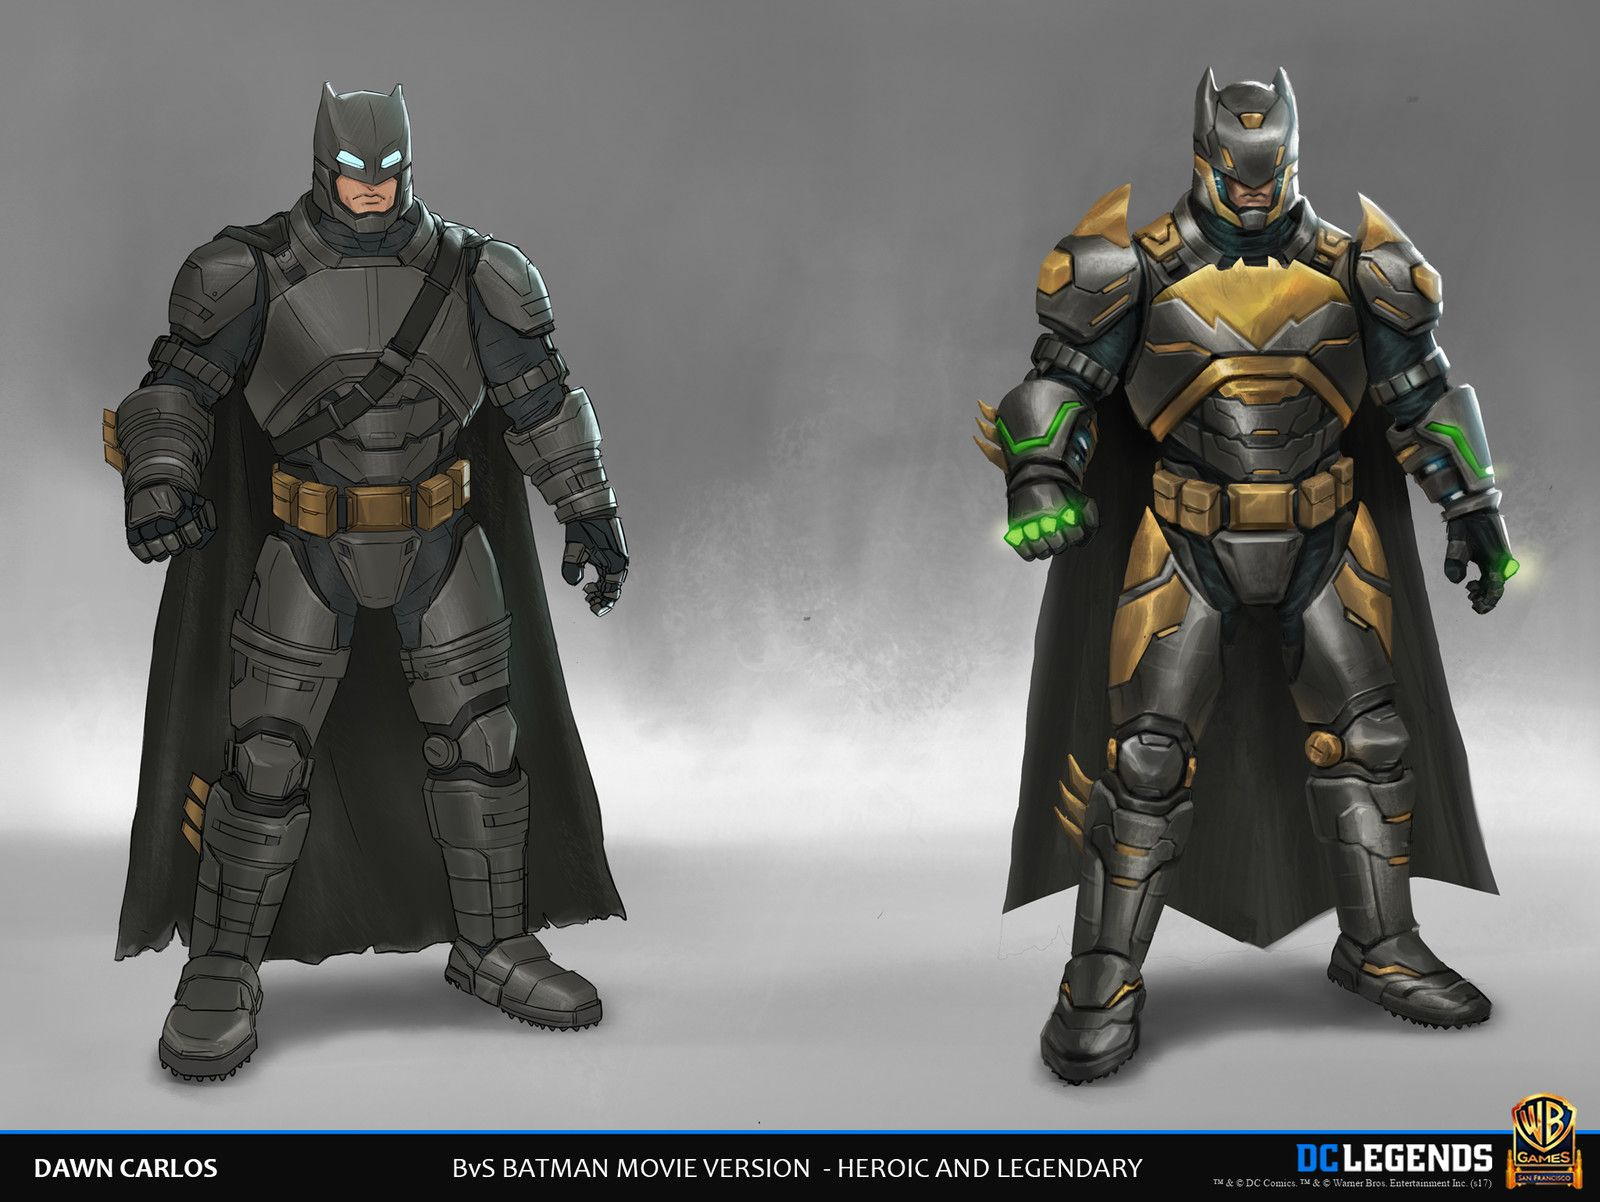 DC Legends Character Designs, Dawn Carlos on ArtStation at